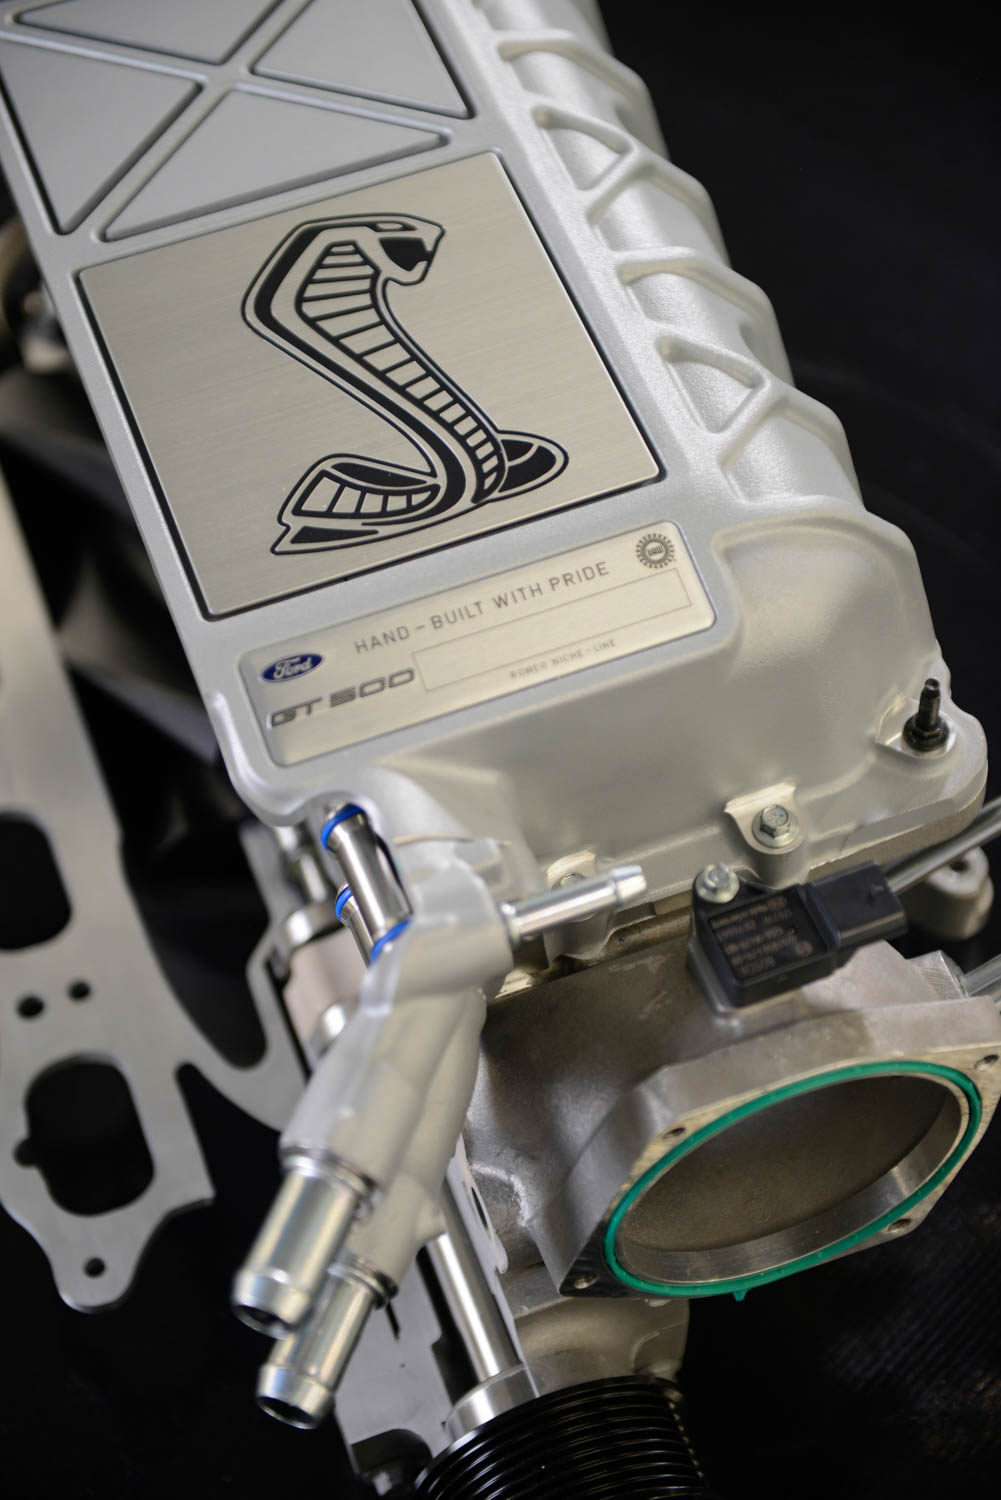 2020 Shelby GT500 engine